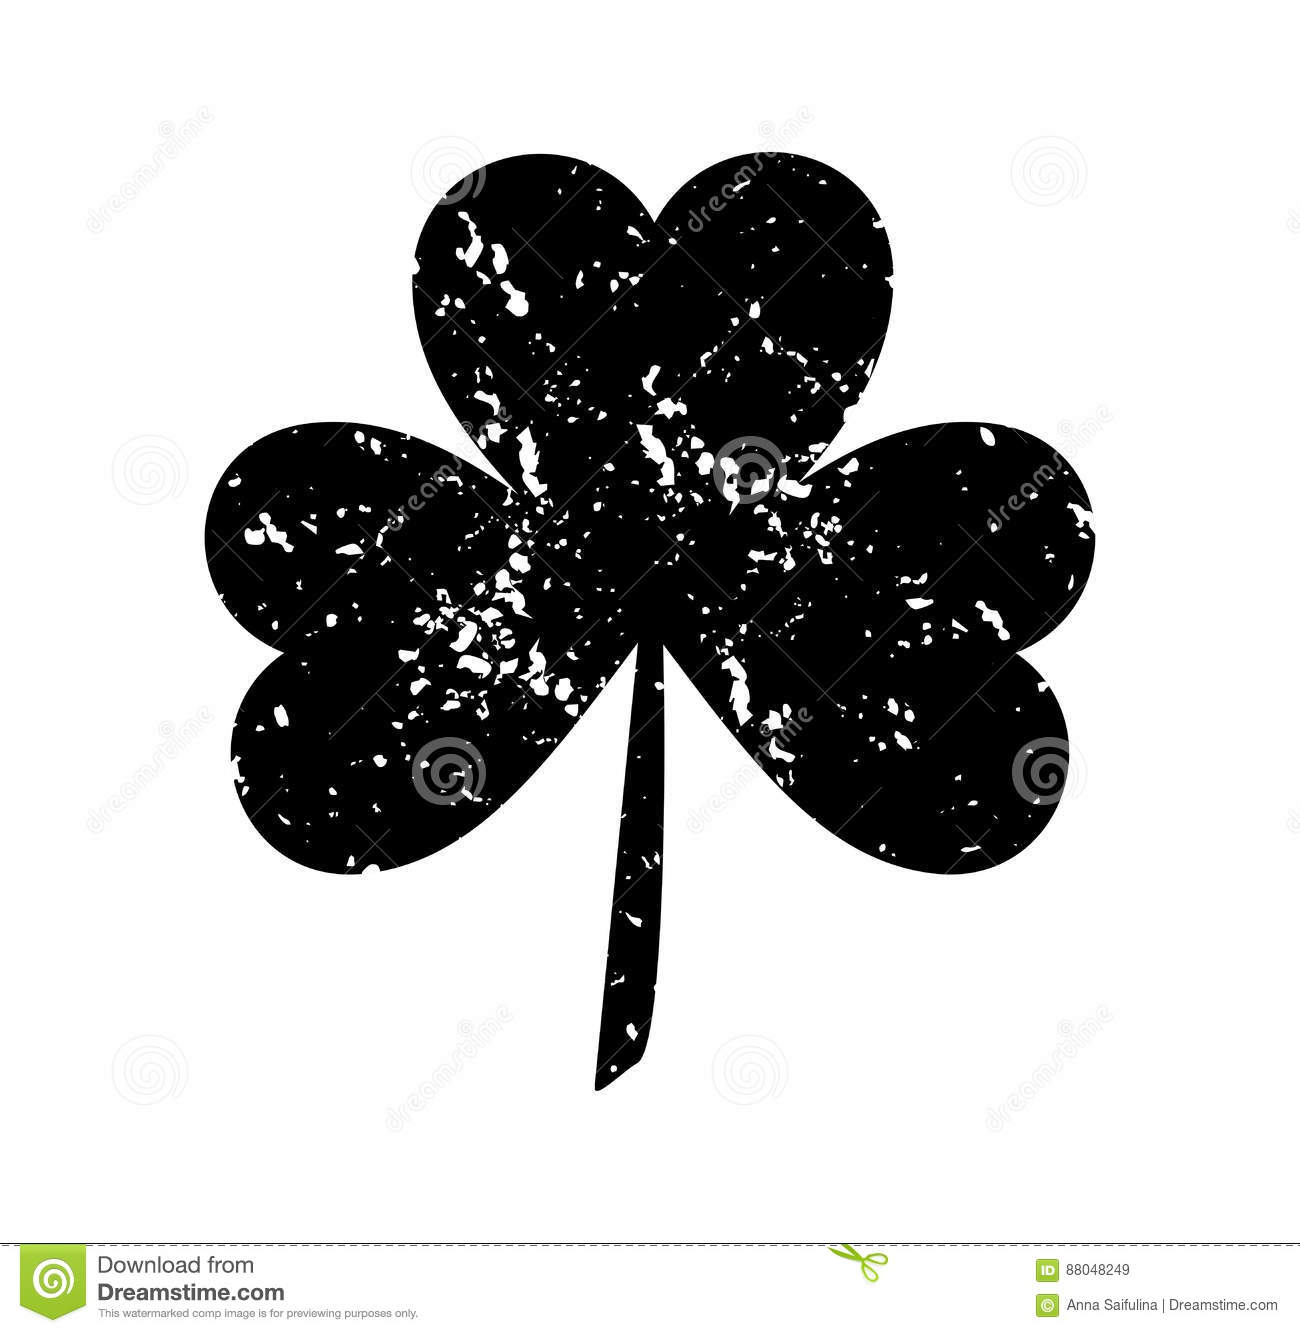 clover leaf isolated black white background silhouettes three flat style abrasion spots scratches